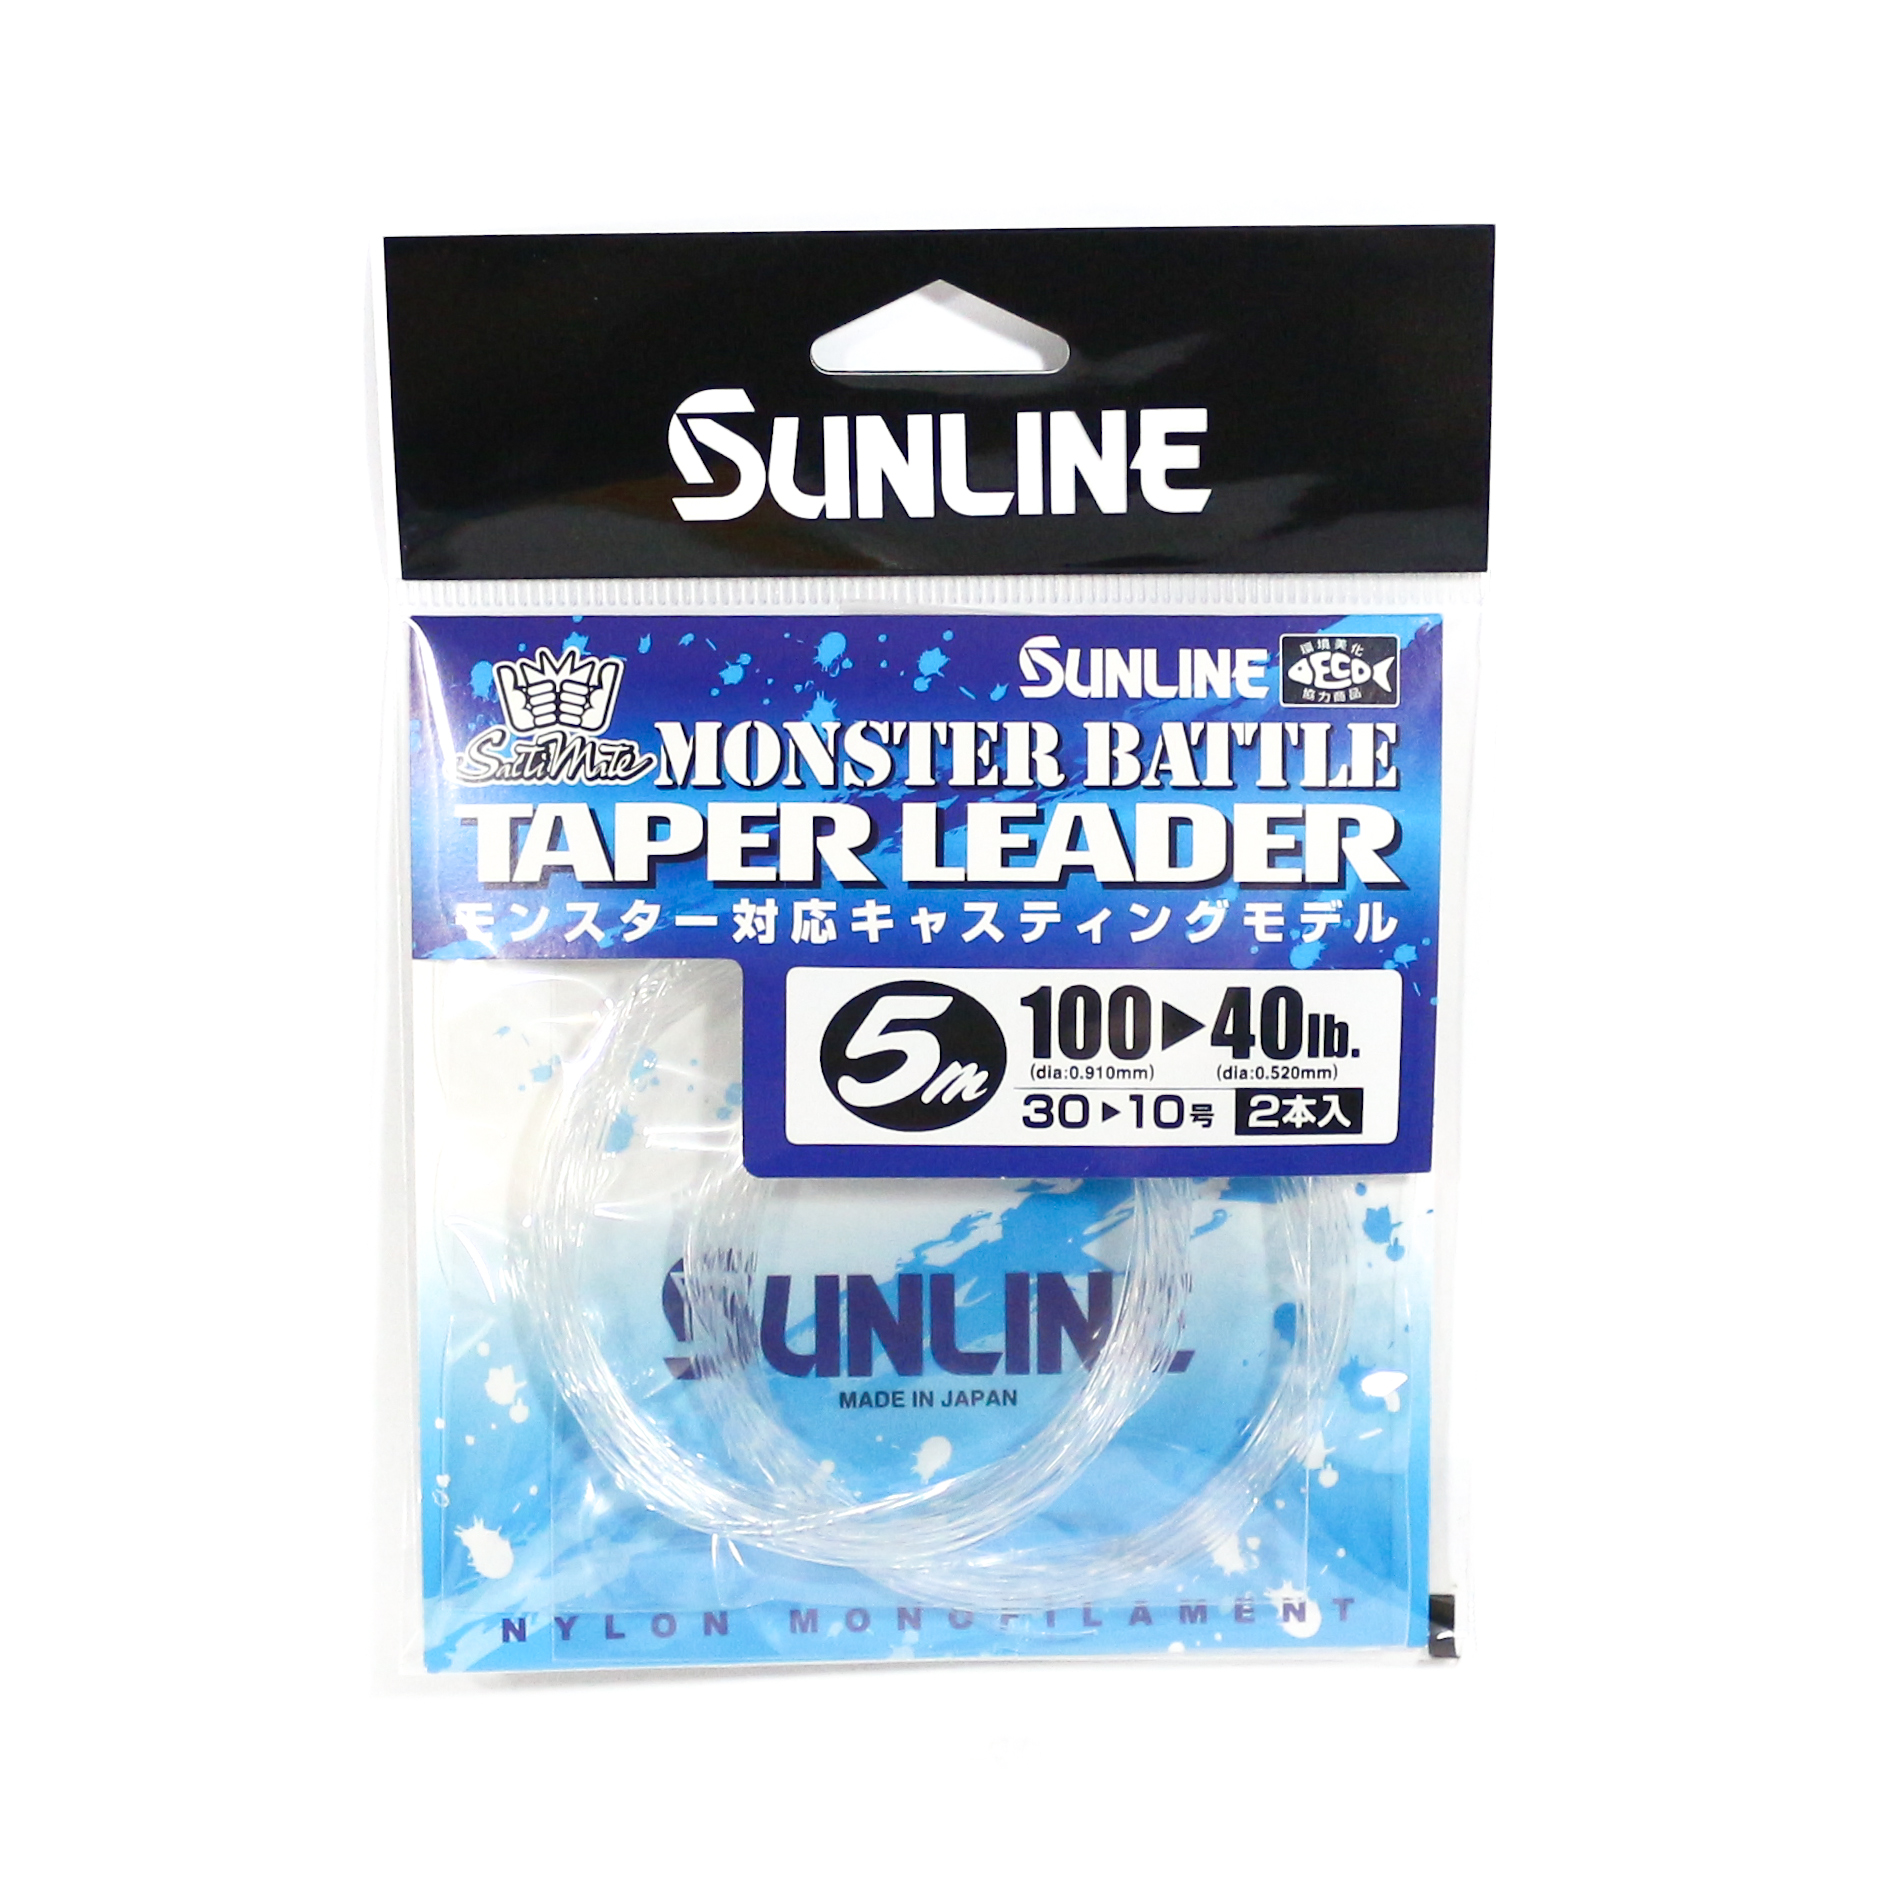 Sunline Taper Leader Monster Battle Nylon Line 5m , 40-100 lb (8638)